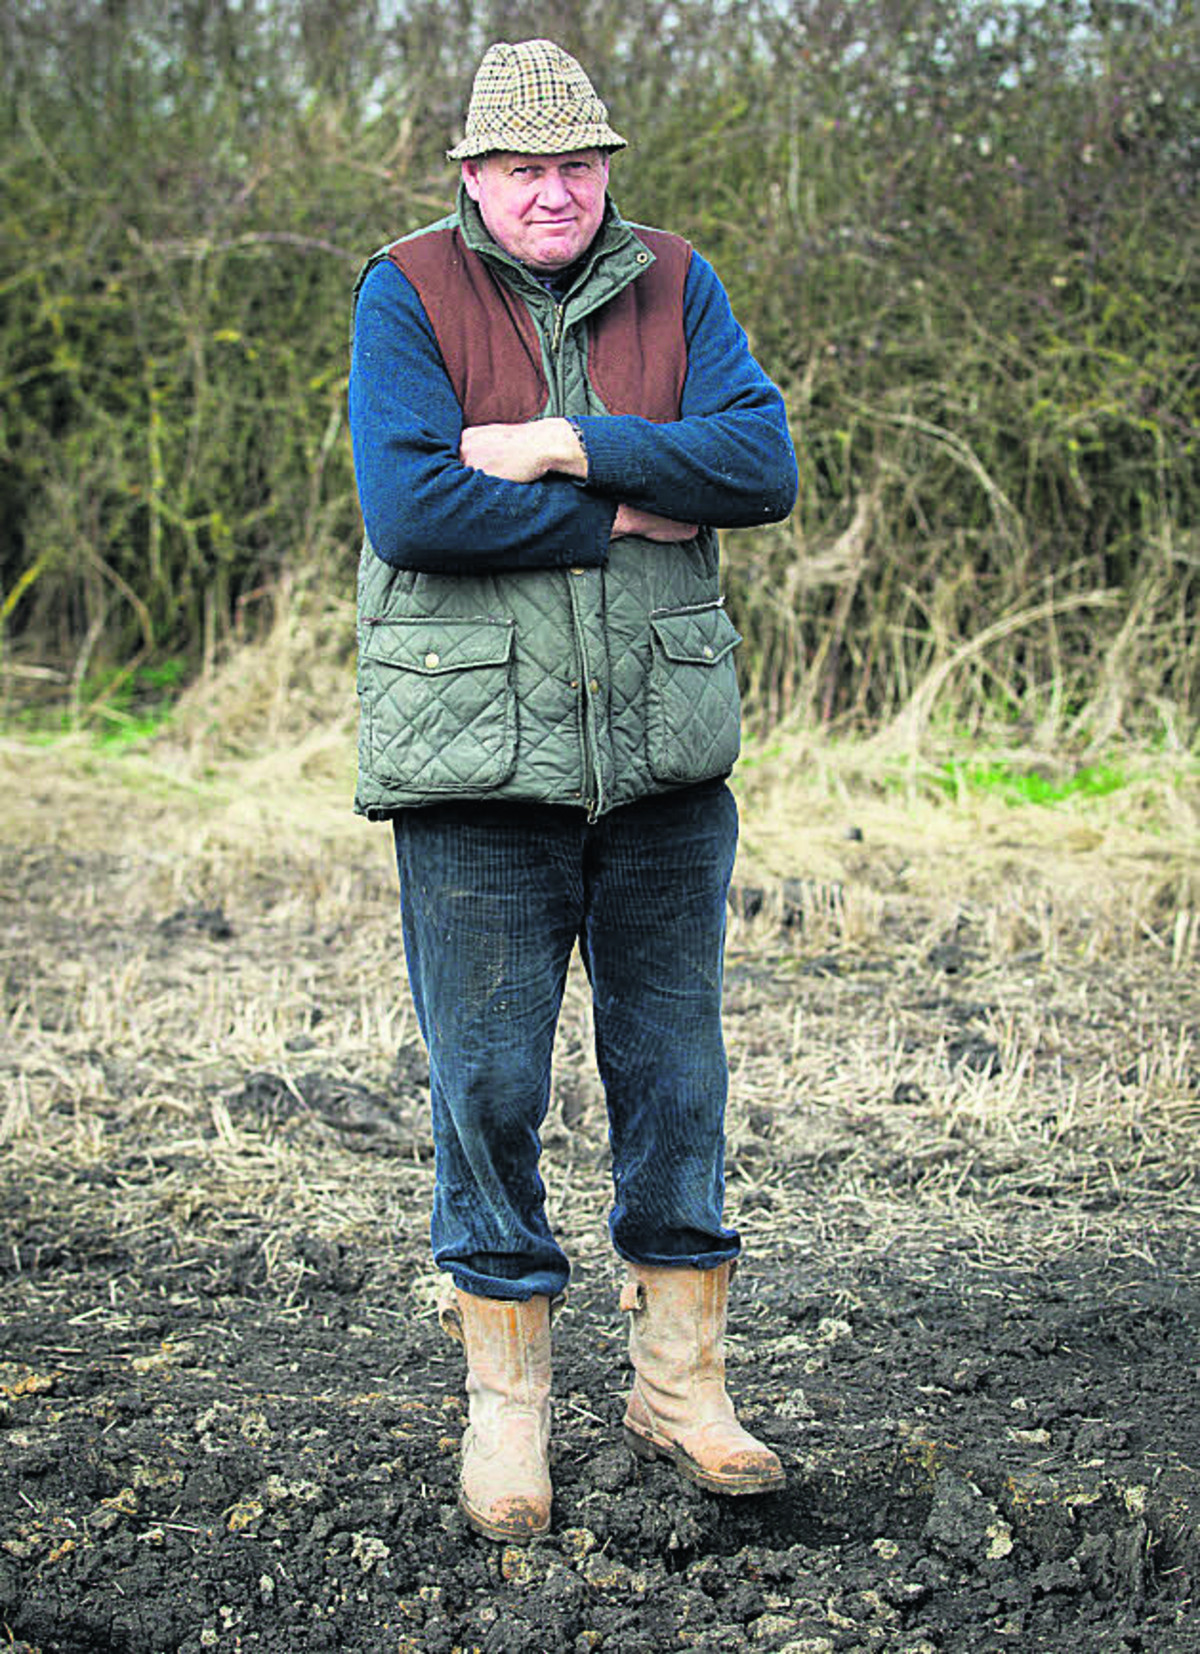 Andrew Snook next to the crater on his farm at Patney after an Army shell landed in a field near the main Penzance-Paddington railway line